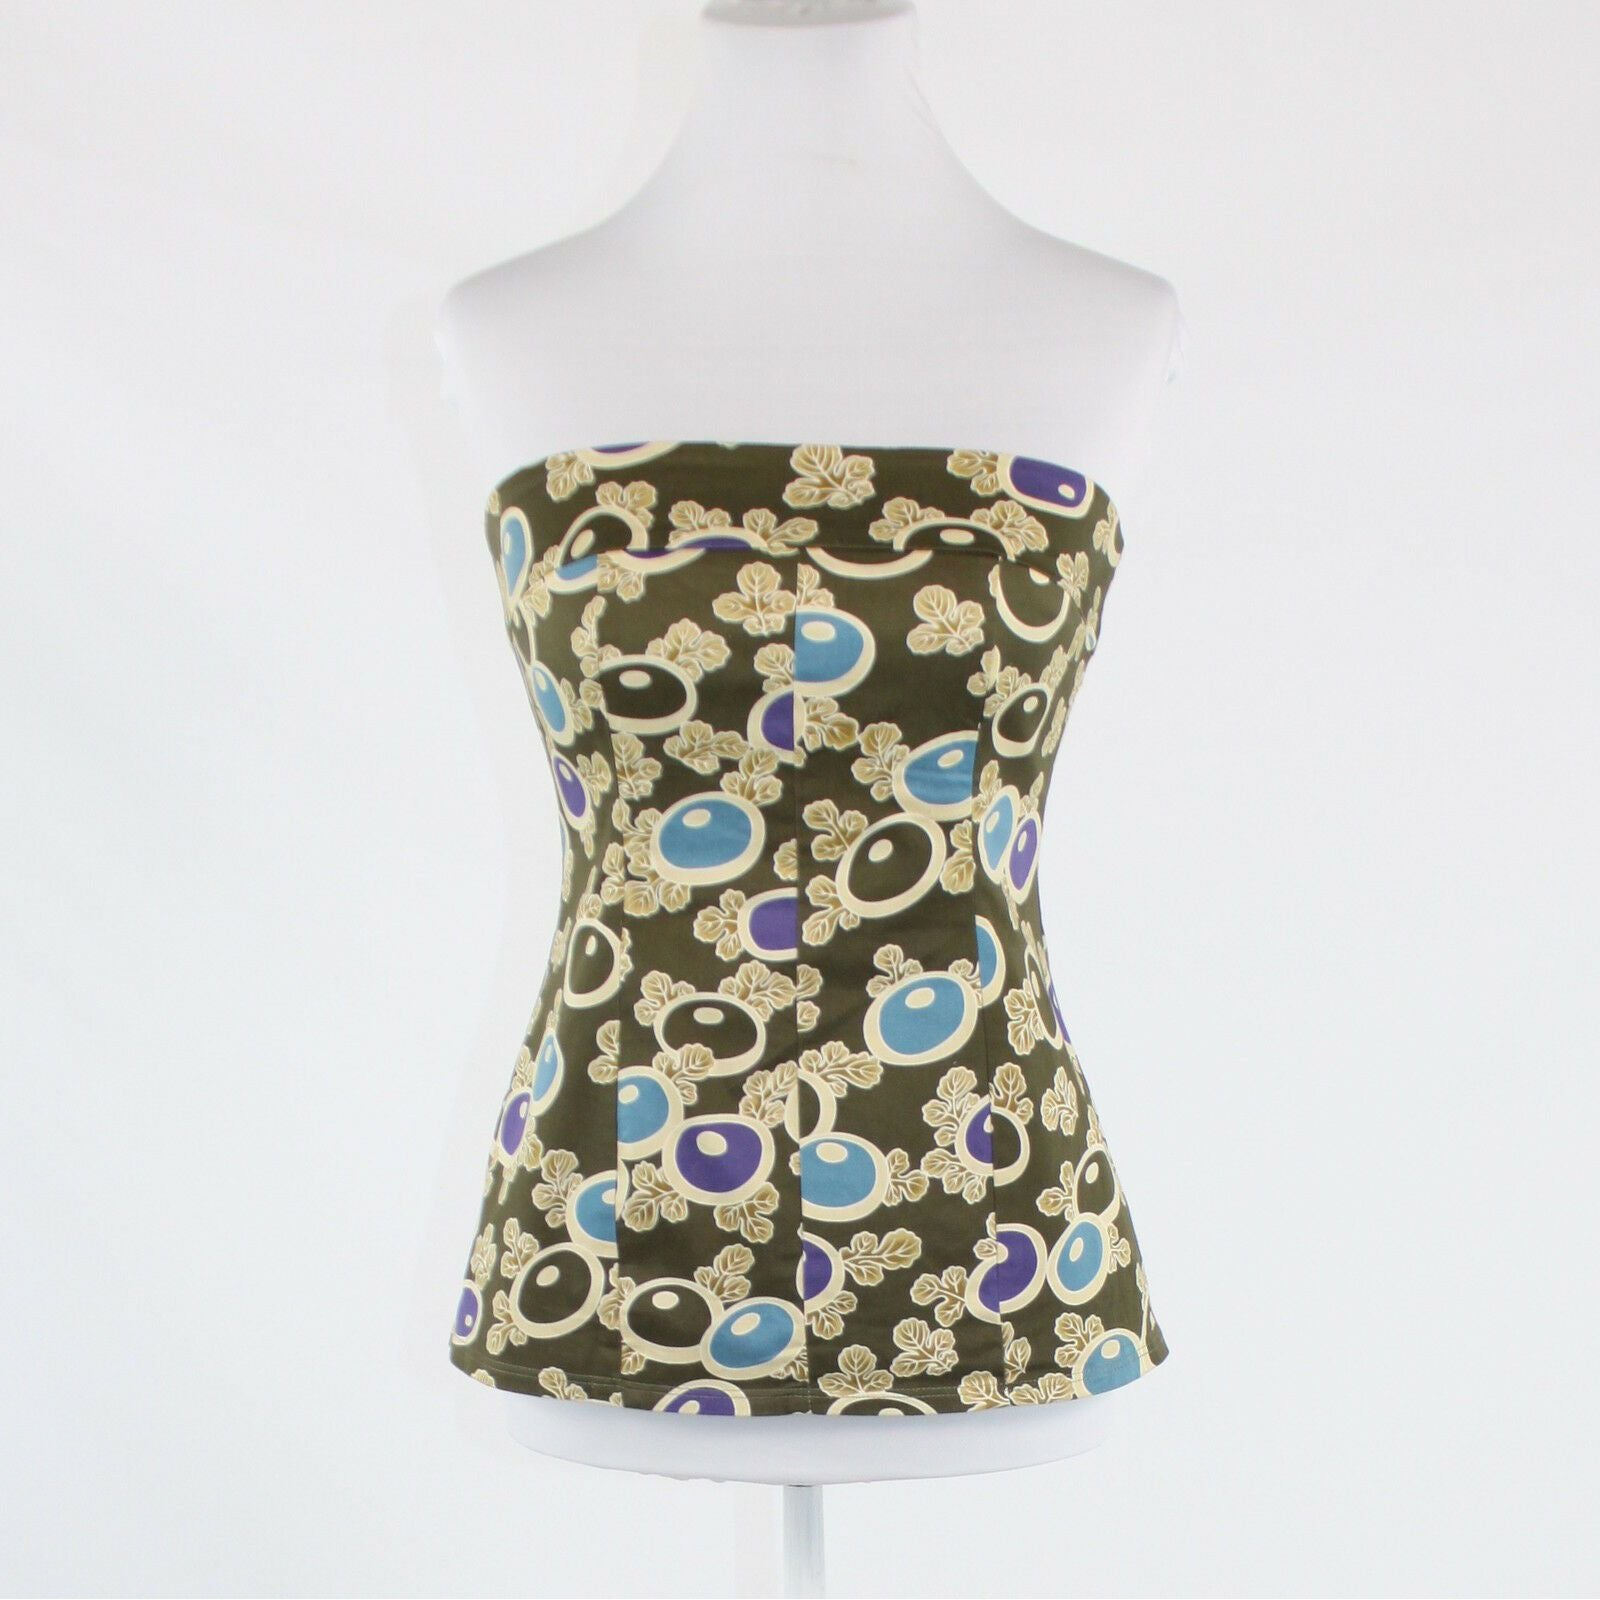 Olive green beige ivory blue purple floral cotton NOTICE strapless blouse 4